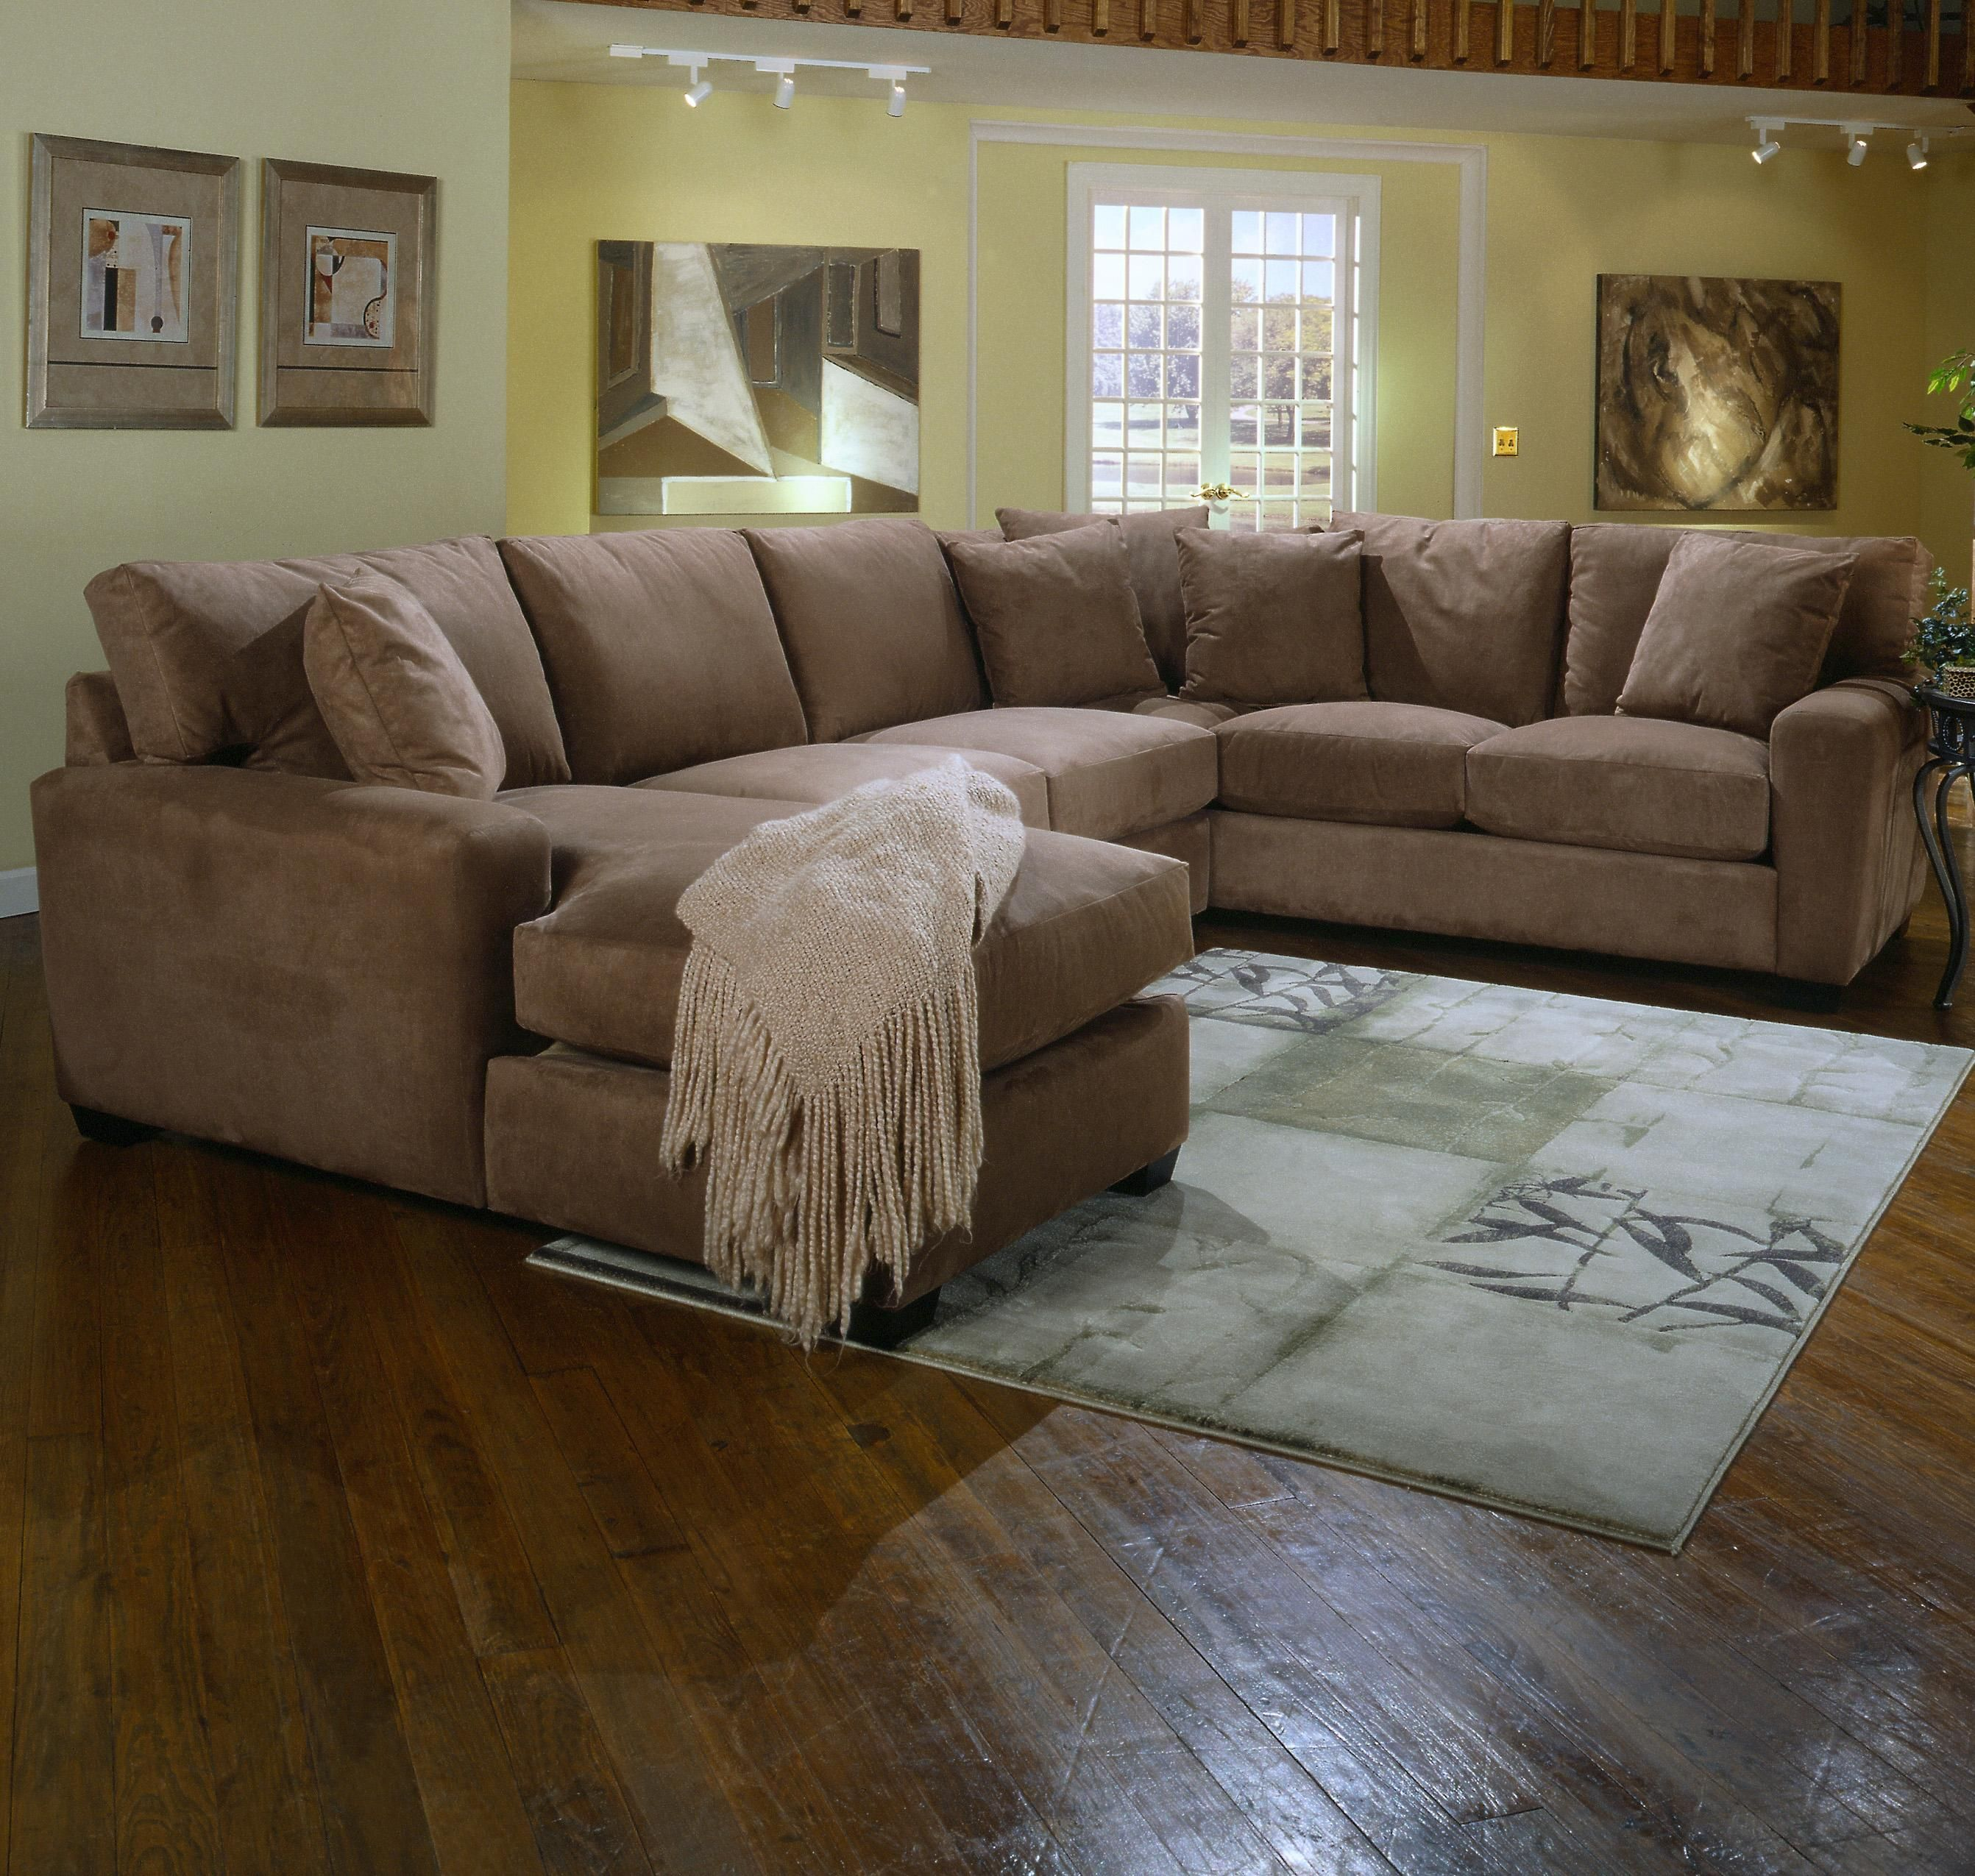 Super Pin By Trend Vogue On Home Ideas In 2019 Couch With Chaise Short Links Chair Design For Home Short Linksinfo